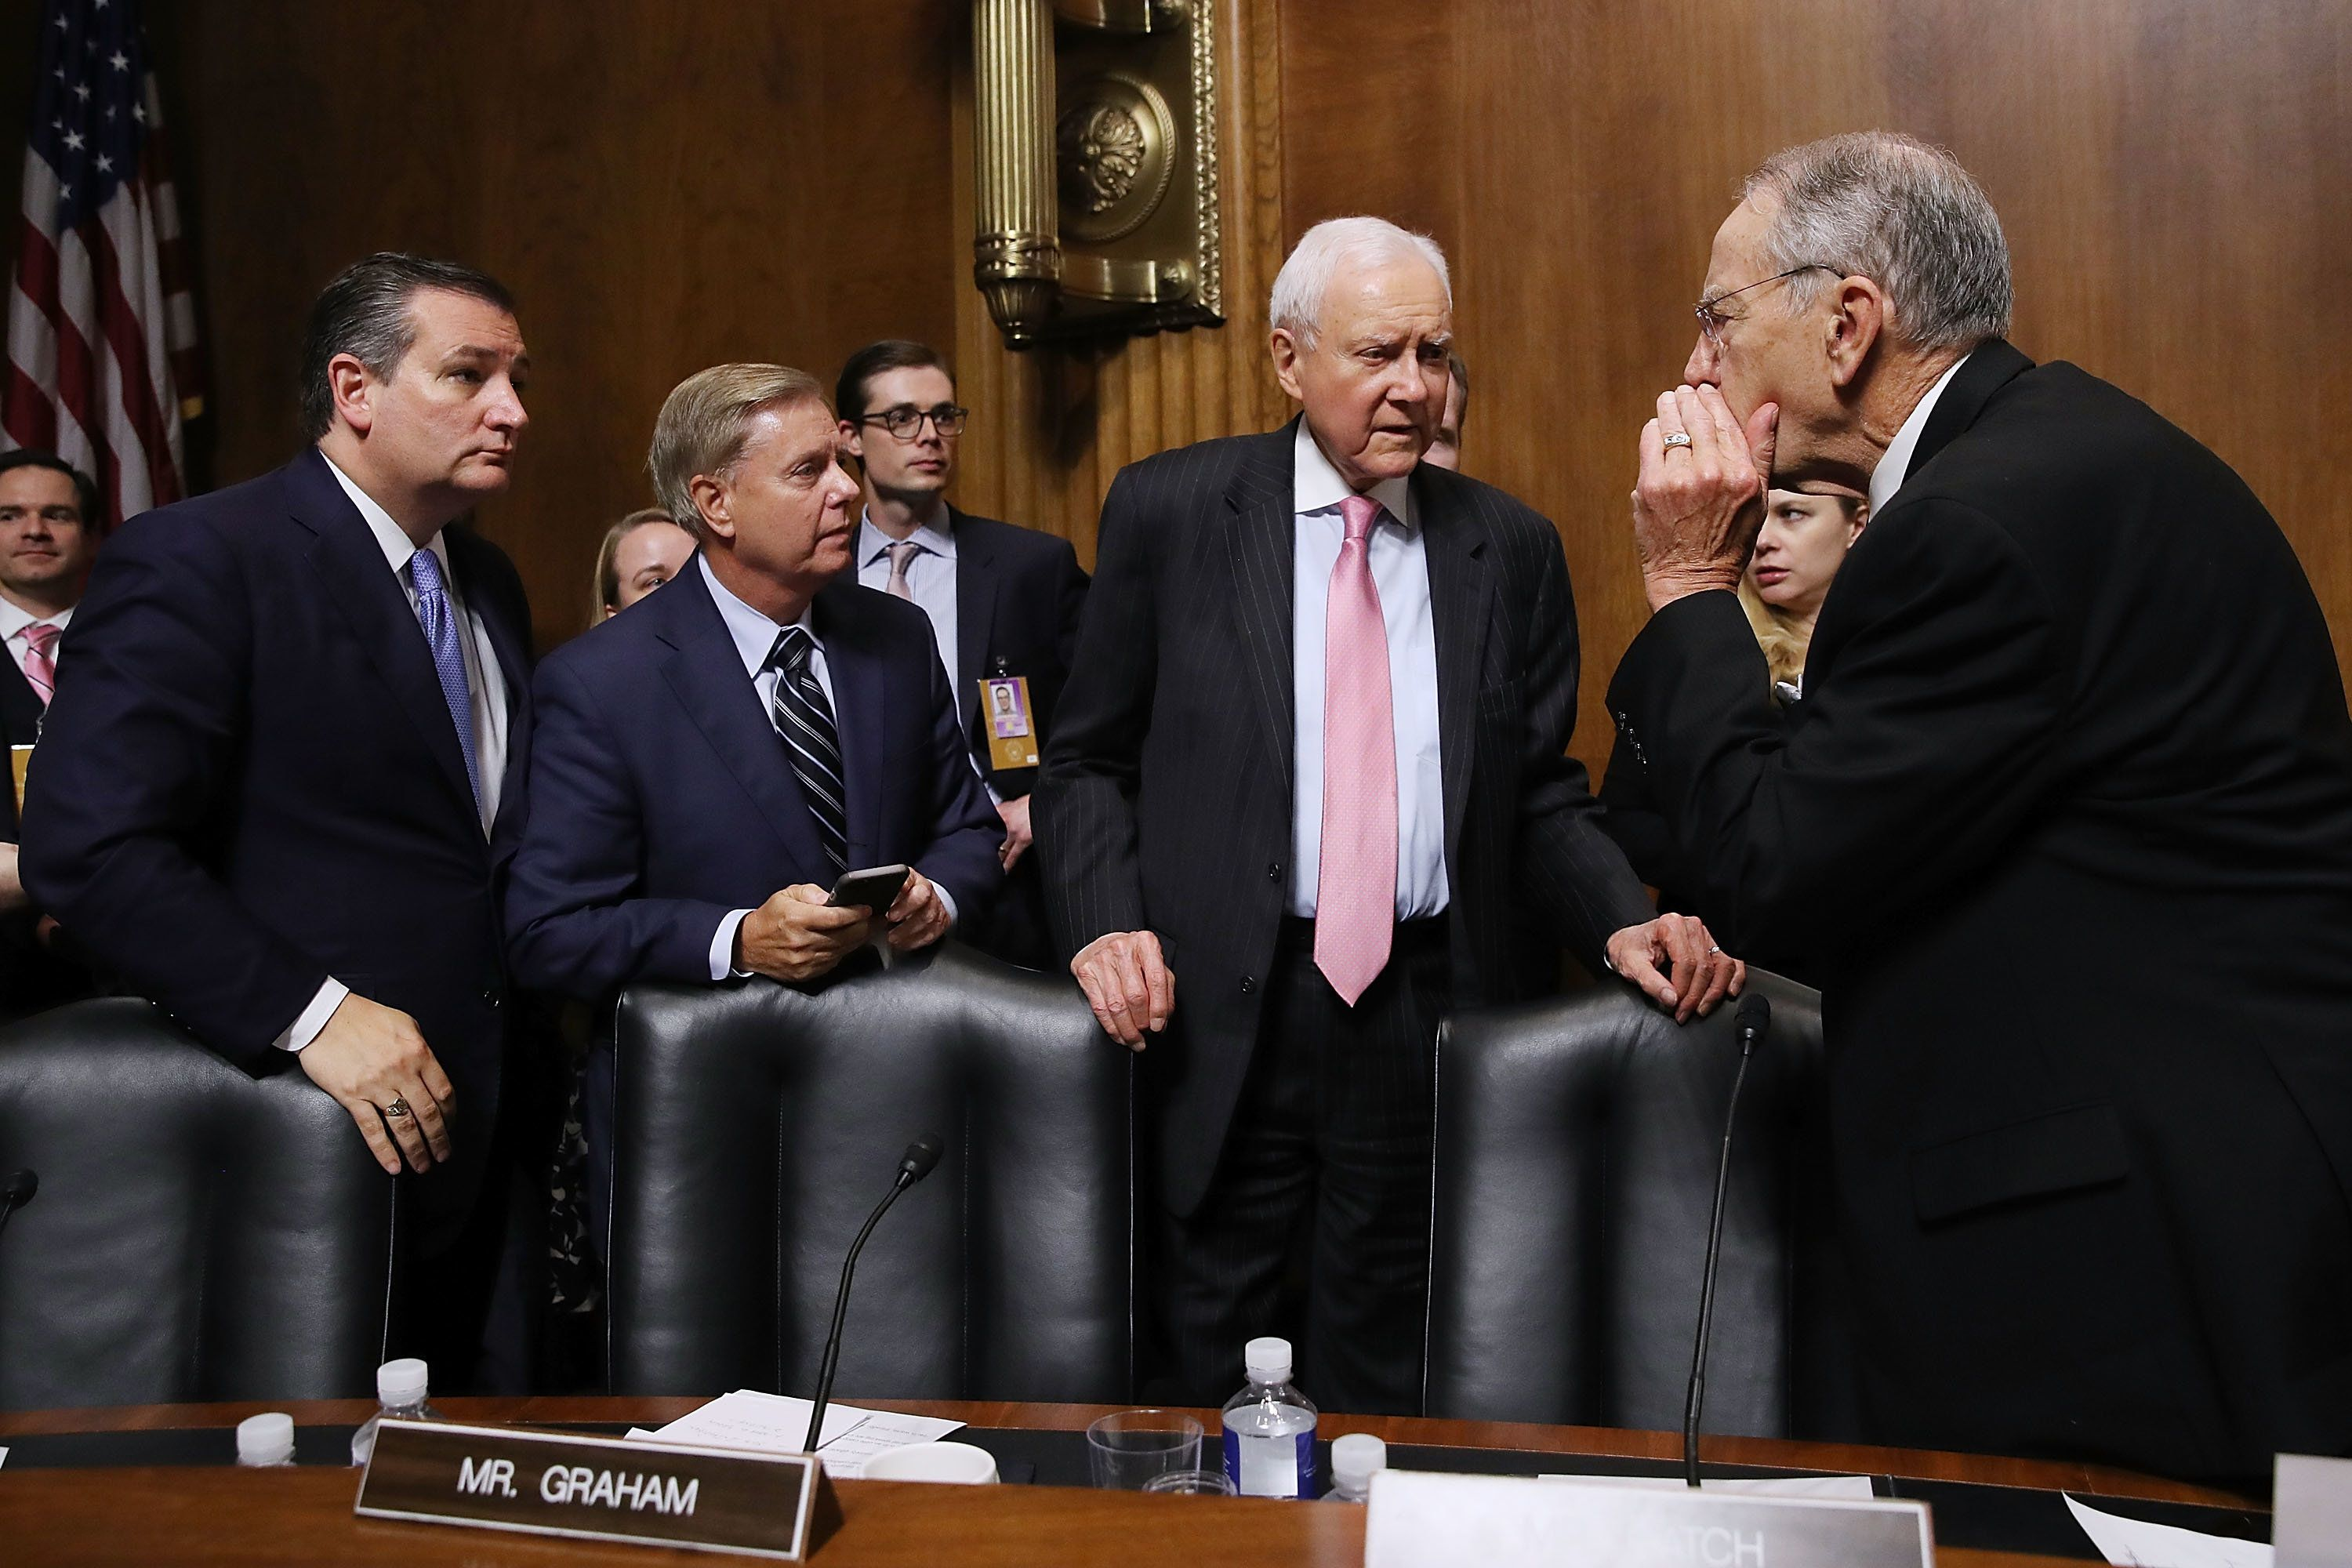 WASHINGTON, DC - SEPTEMBER 27:  Senate Judiciary Committee members (L-R) Sen. Ted Cruz (R-TX),  Sen. Lindsey Graham (R-SC), Sen. Orrin Hatch (R-UT) and Chairman Charles Grassley (R-IA) talk at the conclusion of the Supreme Court confirmation hearing for Judge Brett Kavanaugh in the Dirksen Senate Office Building on Capitol Hill September 27, 2018 in Washington, DC. Kavanaugh was called back to testify about claims by Christine Blasey Ford, who has accused him of sexually assaulting her during a party in 1982 when they were high school students in suburban Maryland.  (Photo by Win McNamee/Getty Images)